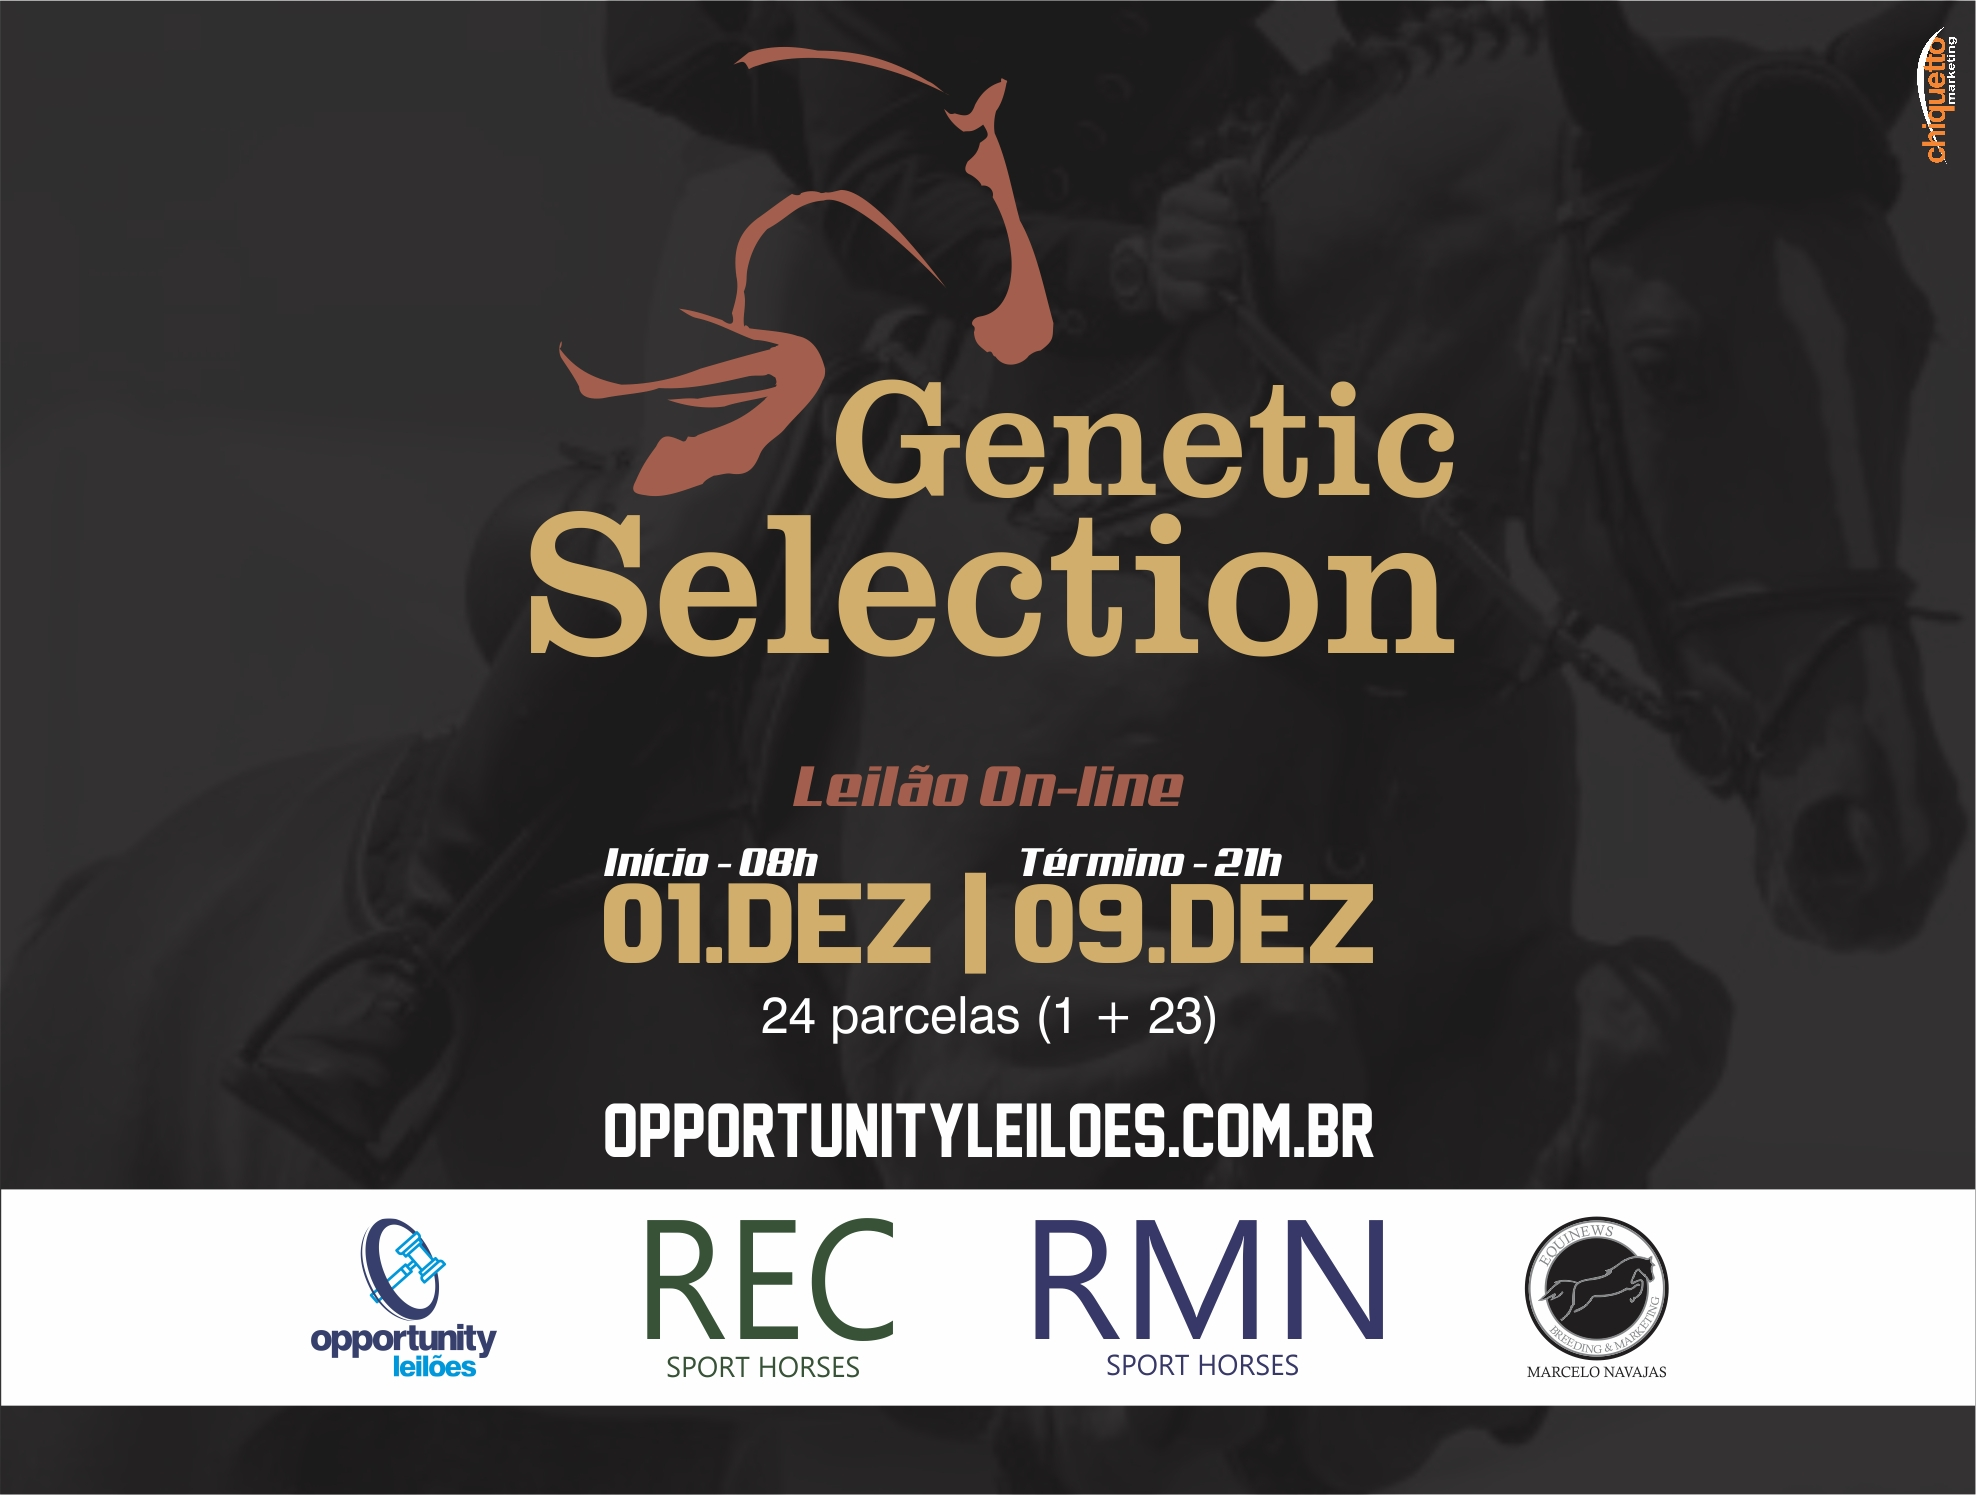 LEILÃO ONLINE GENETIC SELECTION